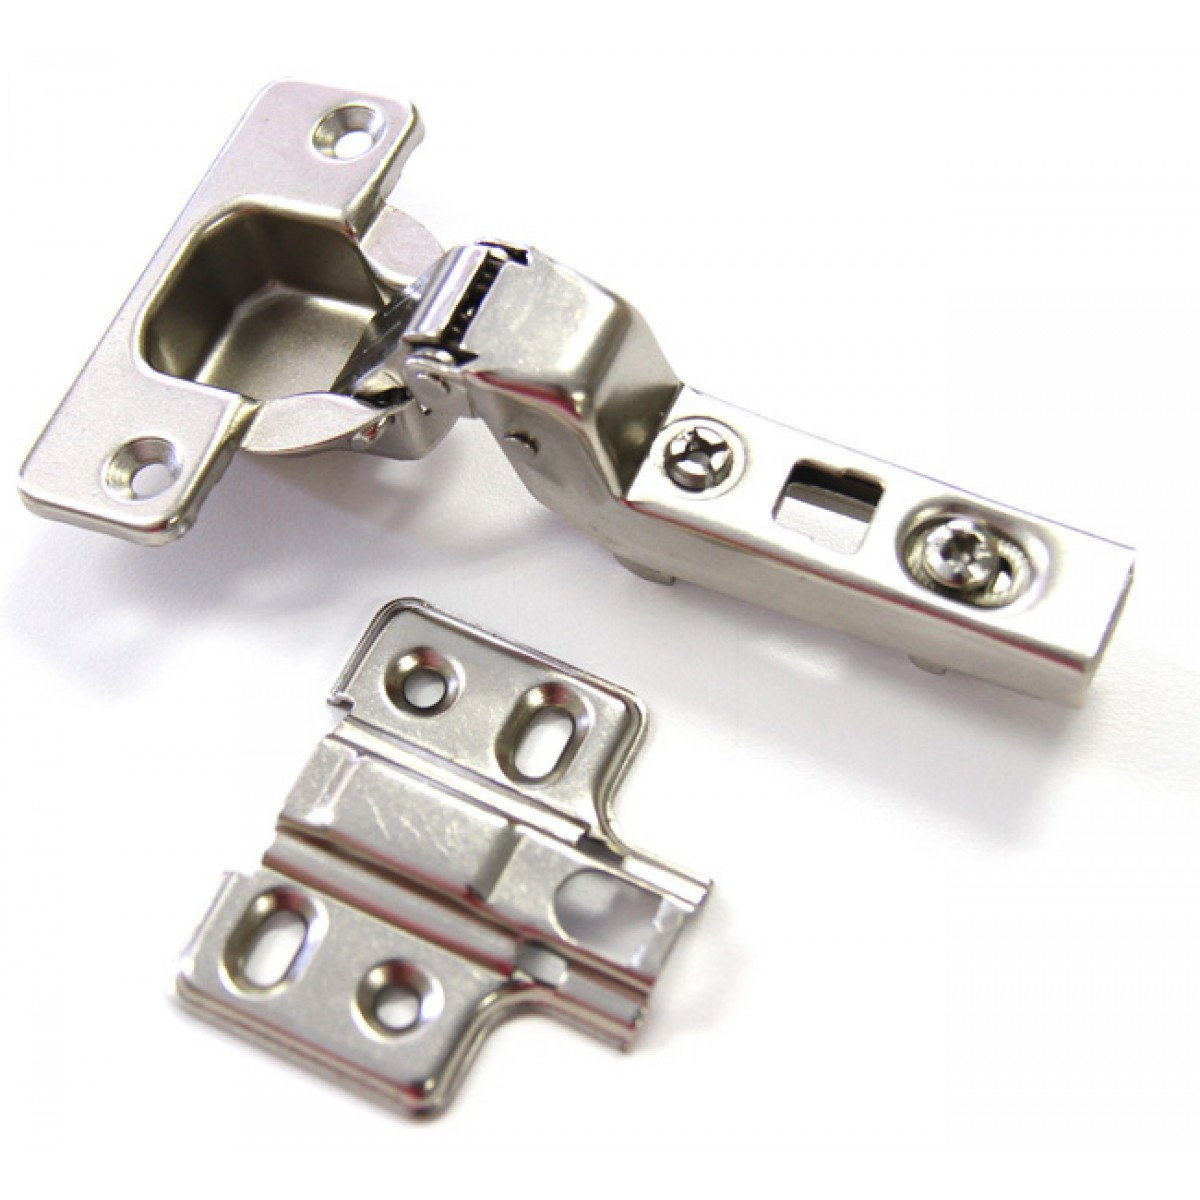 European Hinges For Kitchen Cabinets: European Cabinet Concealed Self Close Inset Hinge For